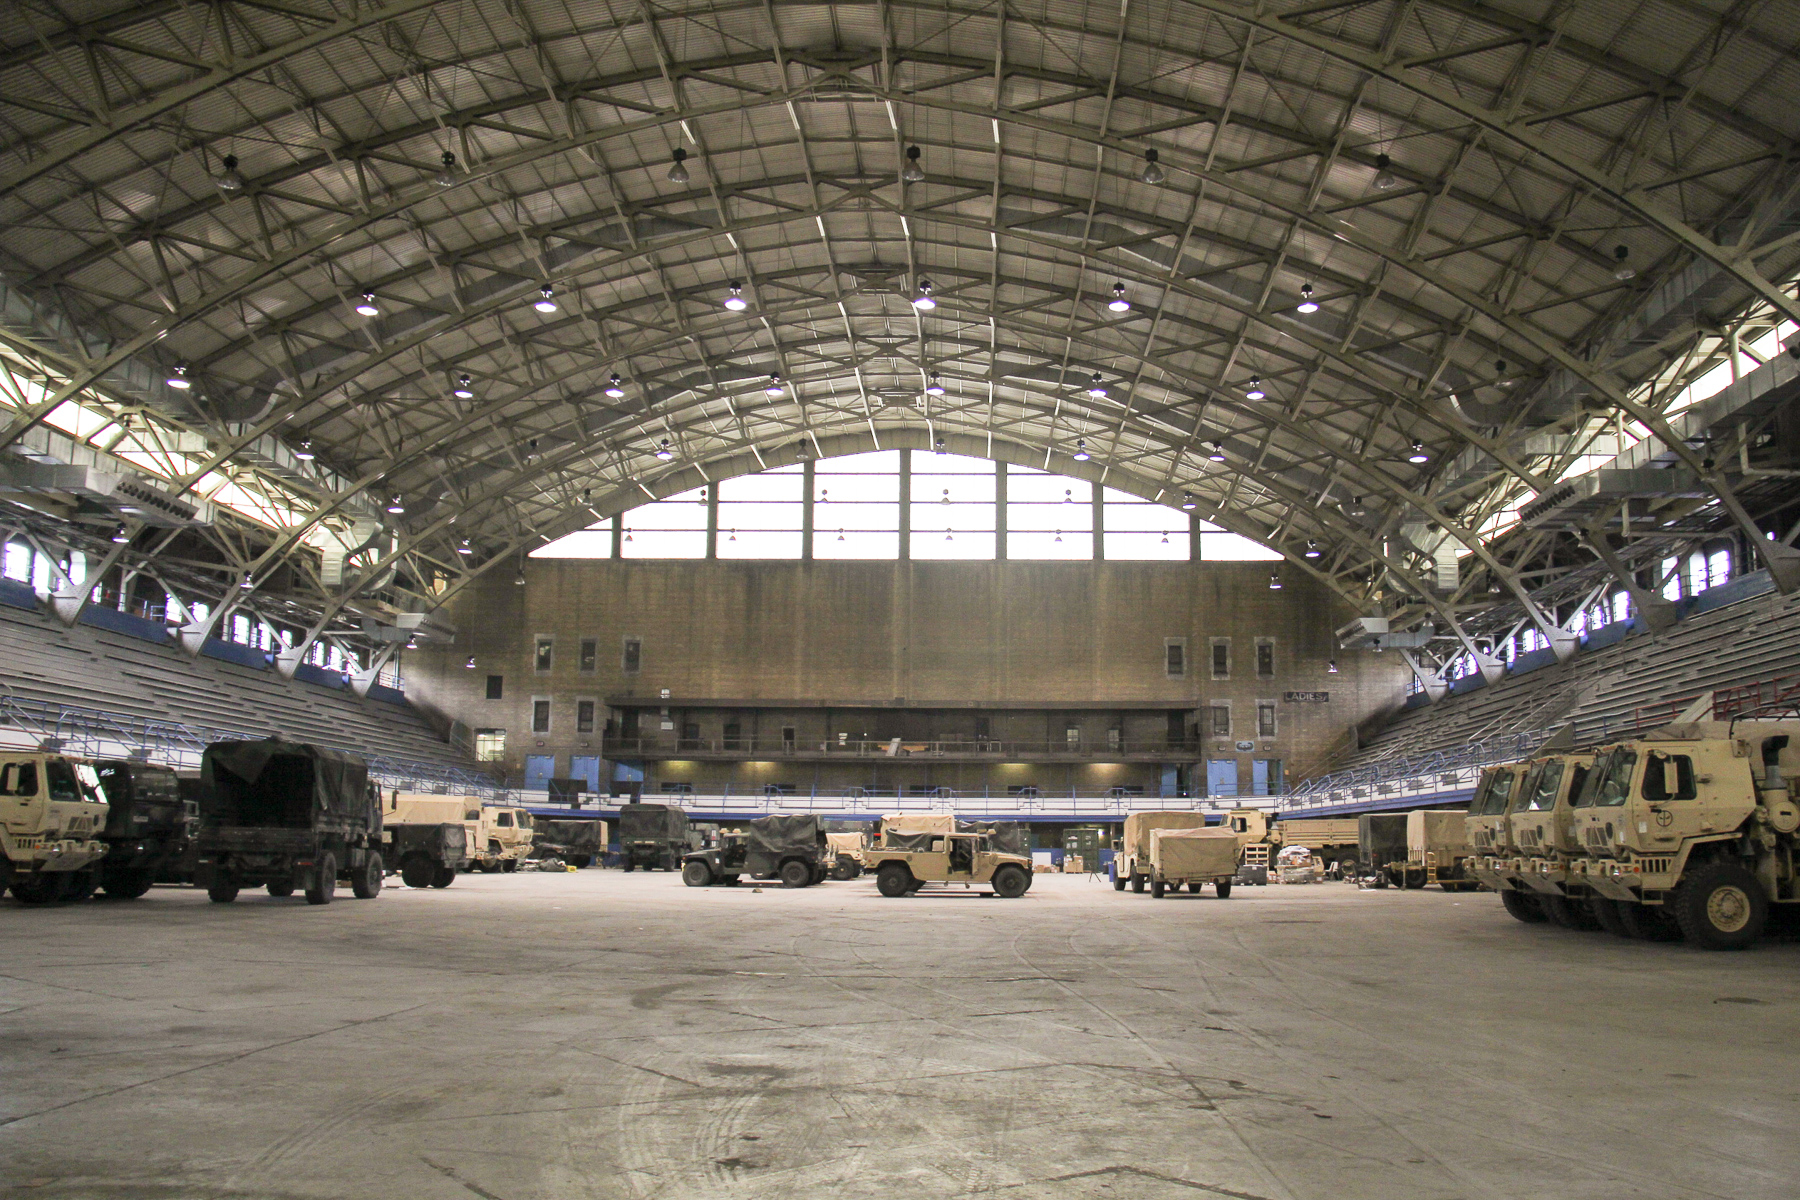 Military vehicles currently occupy the large arena at the General Richard L. Jones Armory in preparation for the 2nd Battalion 178th Infantry's deployment to Afghanistan this month.